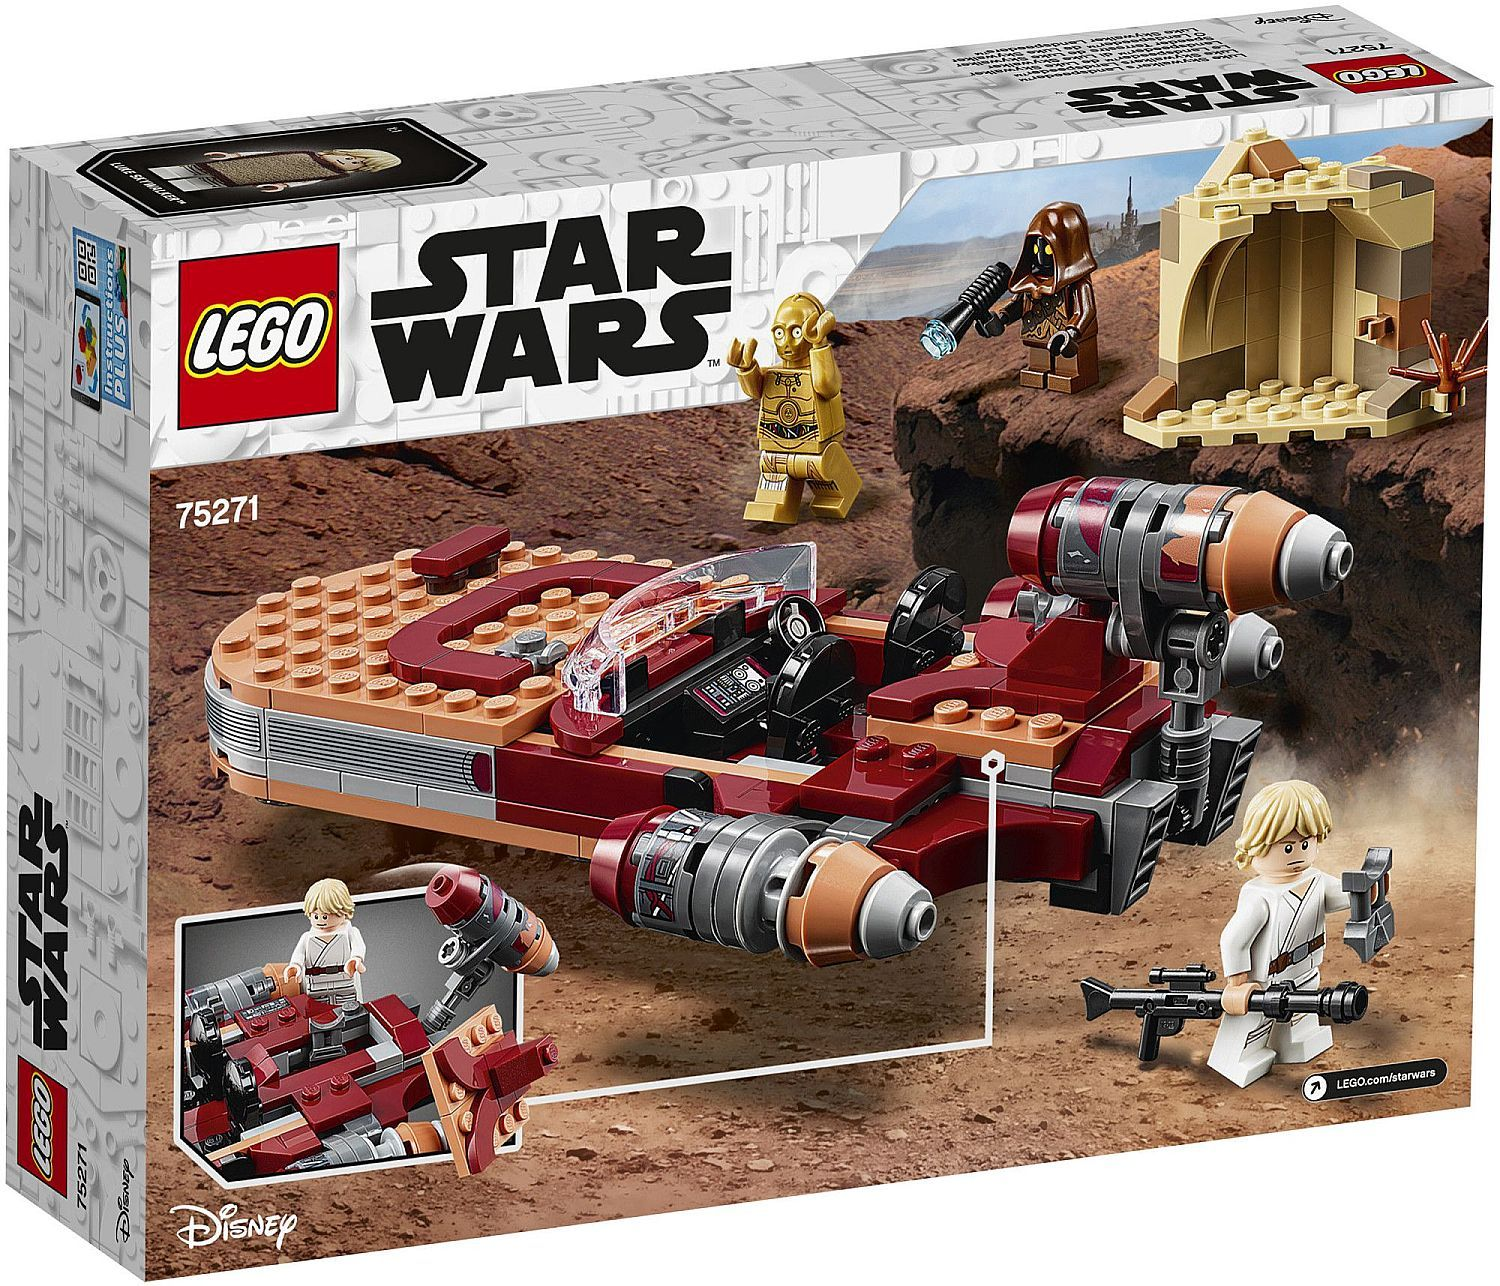 Конструктор Lego Star Wars - Luke Skywalker's Landspeeder (75271) - 2